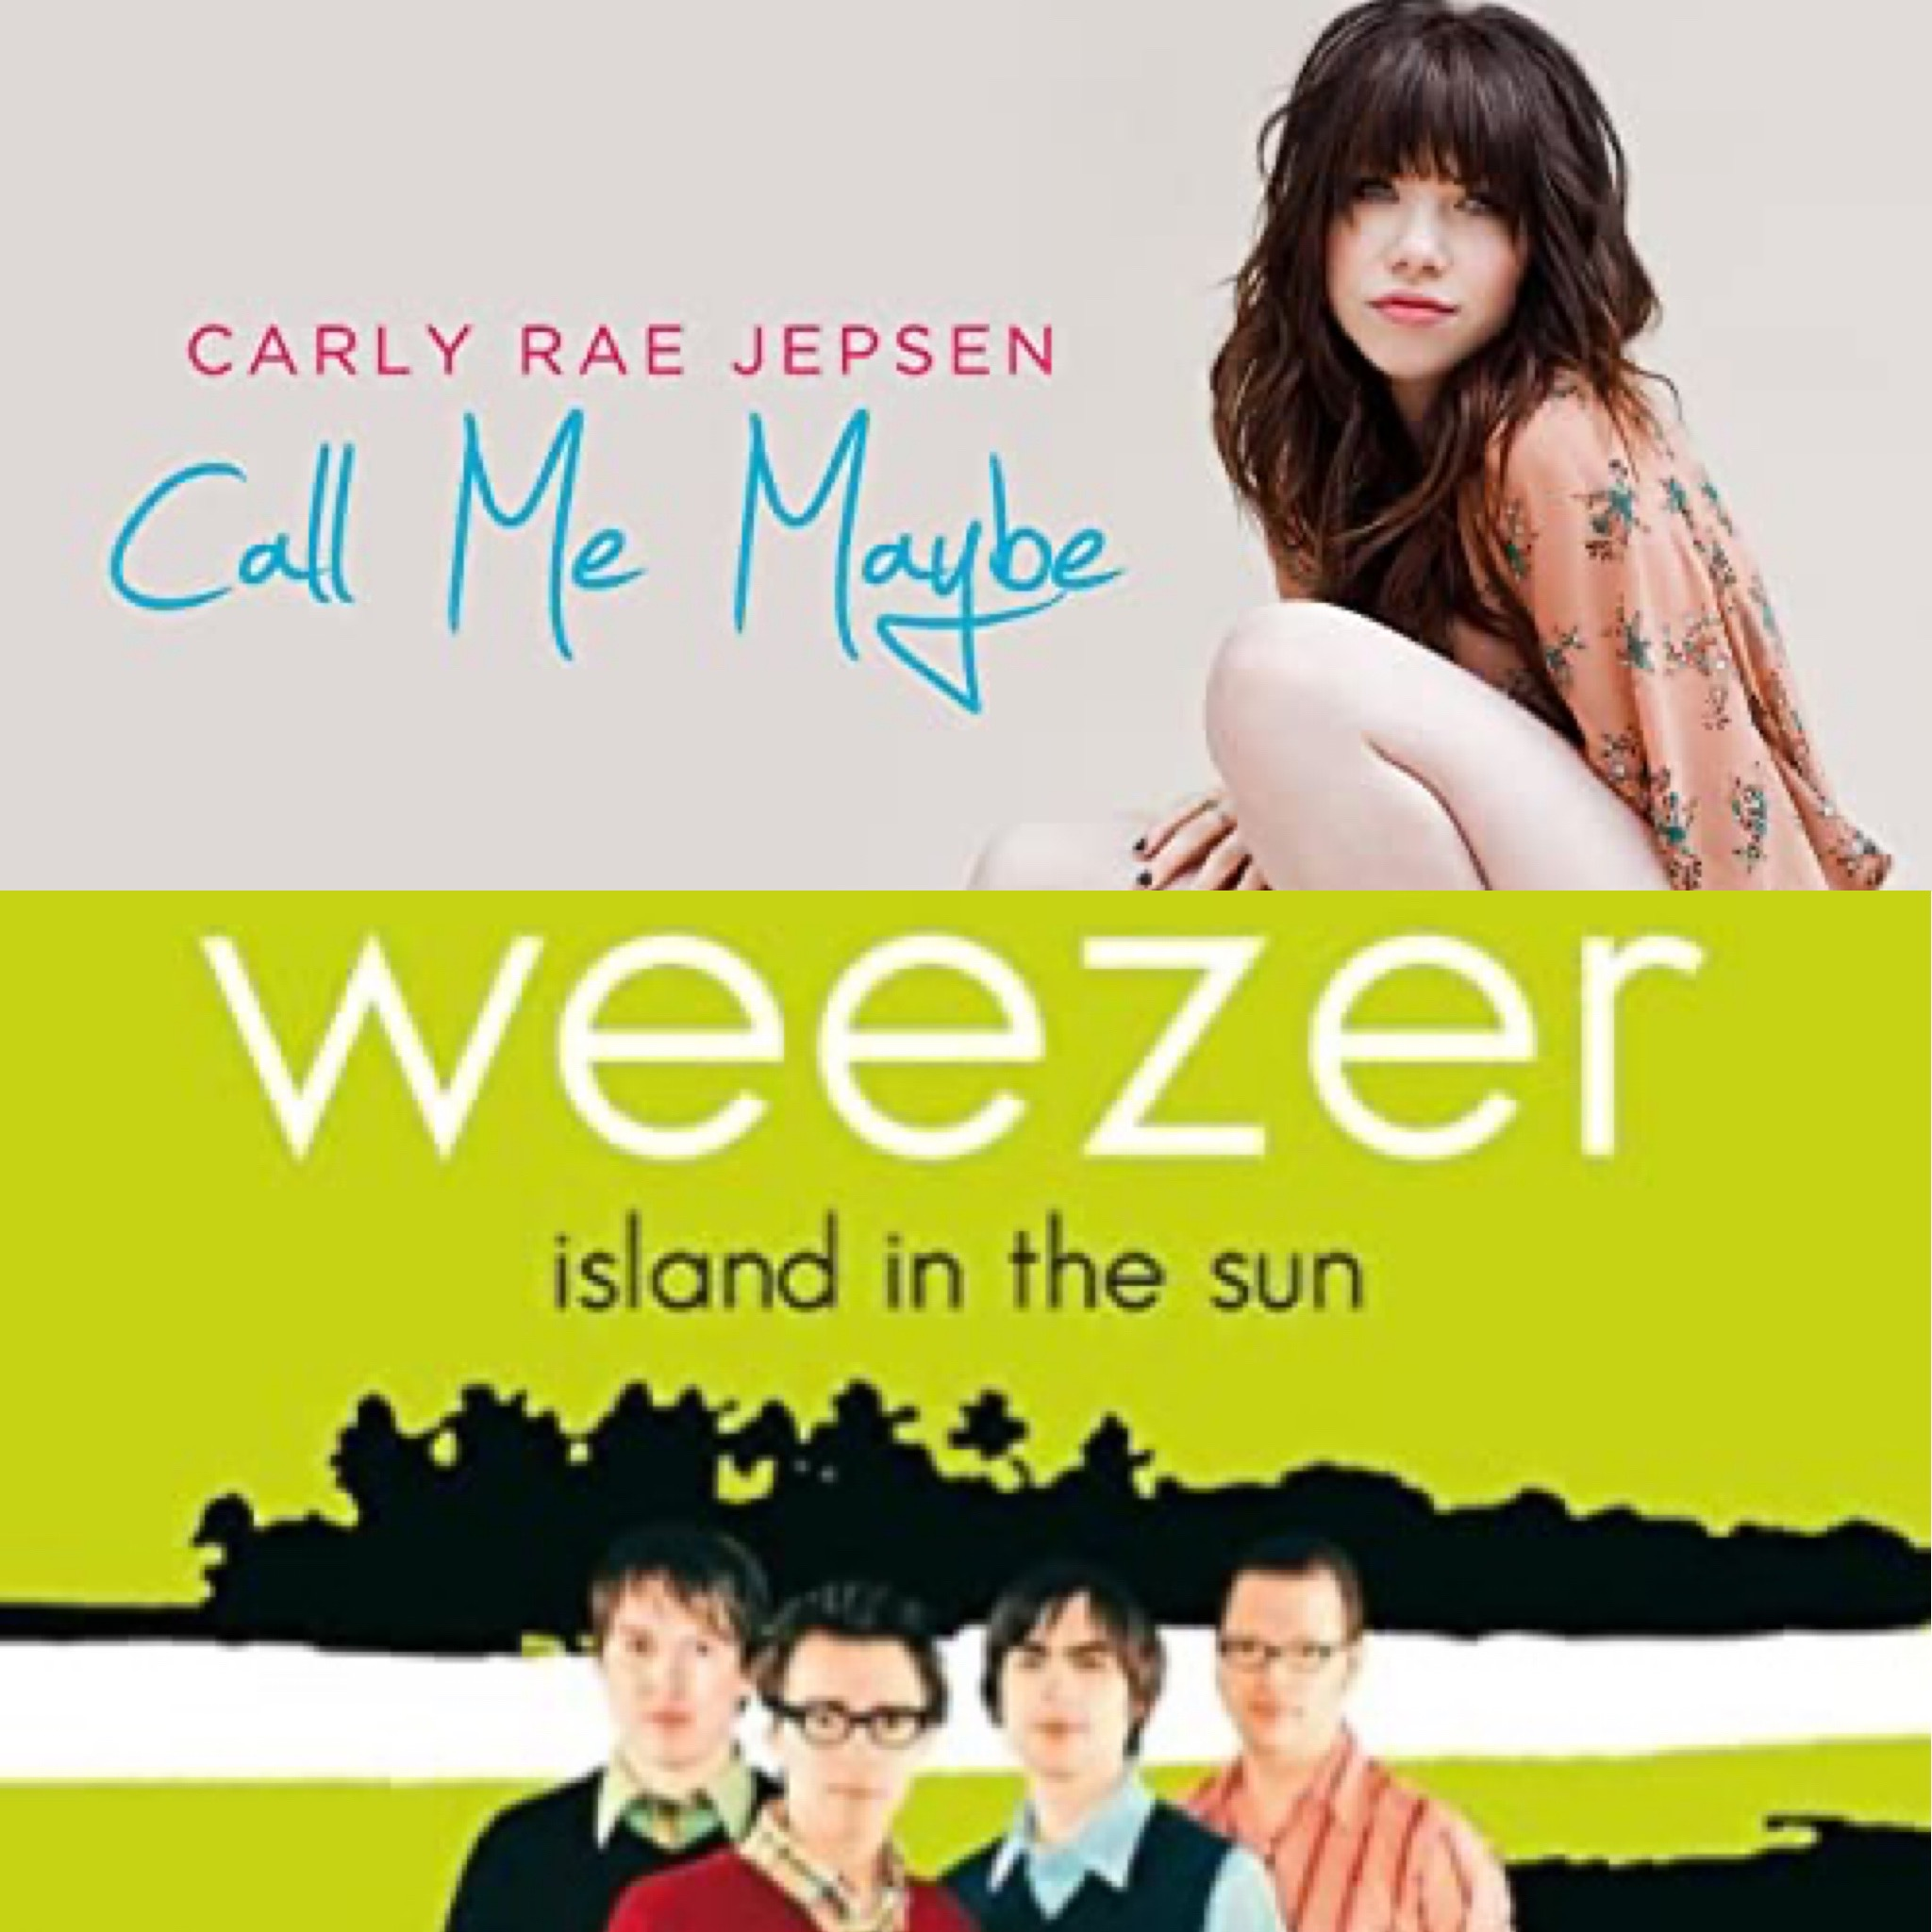 Fonky-M - Call me in the sun (Carly Rae Jepsen Vs Weezer) (2020)